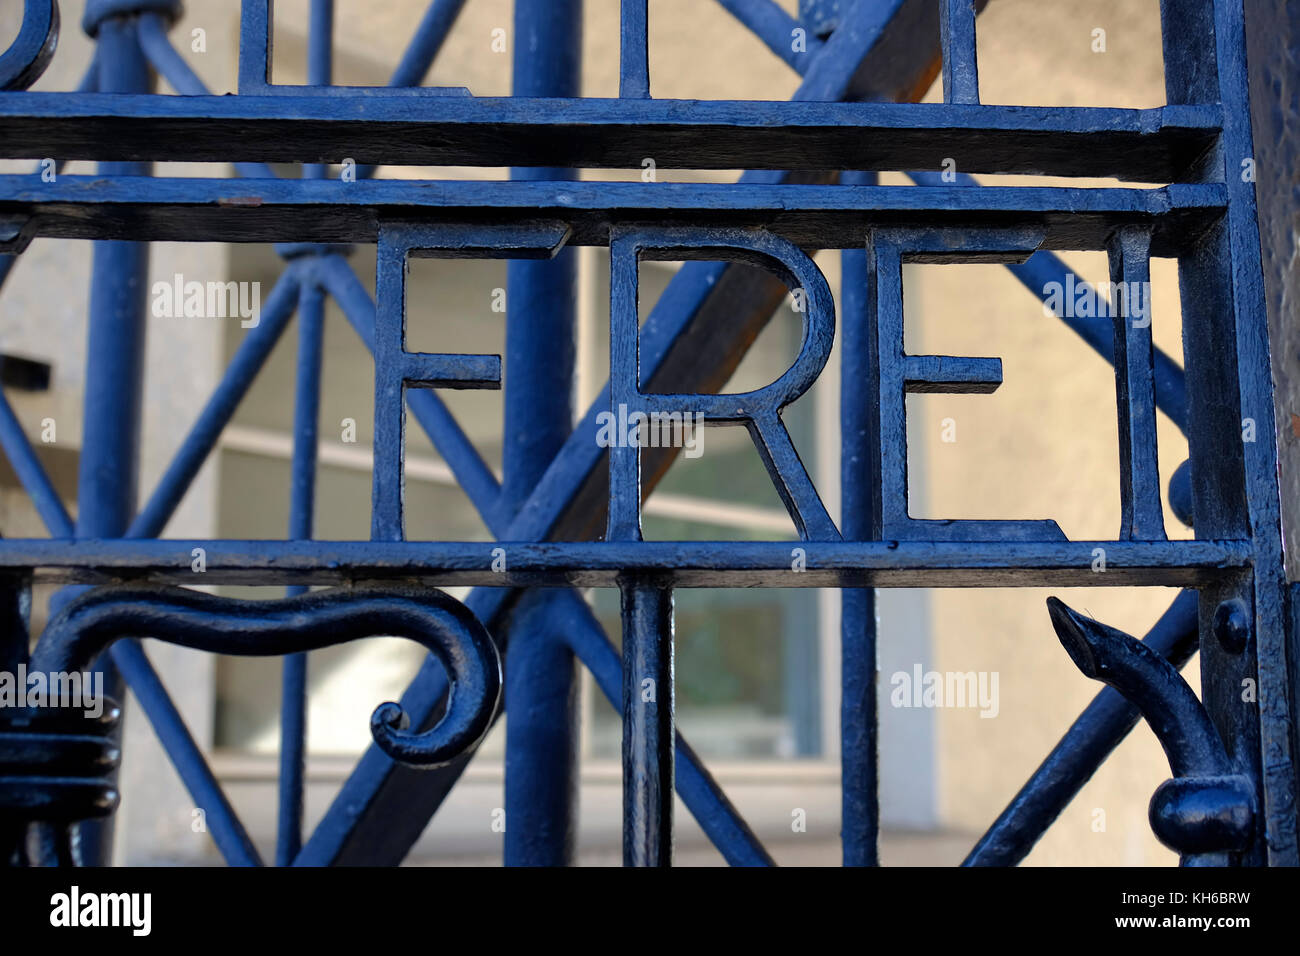 Arbeit macht frei. Dachau concentration camp, Germany. - Stock Image